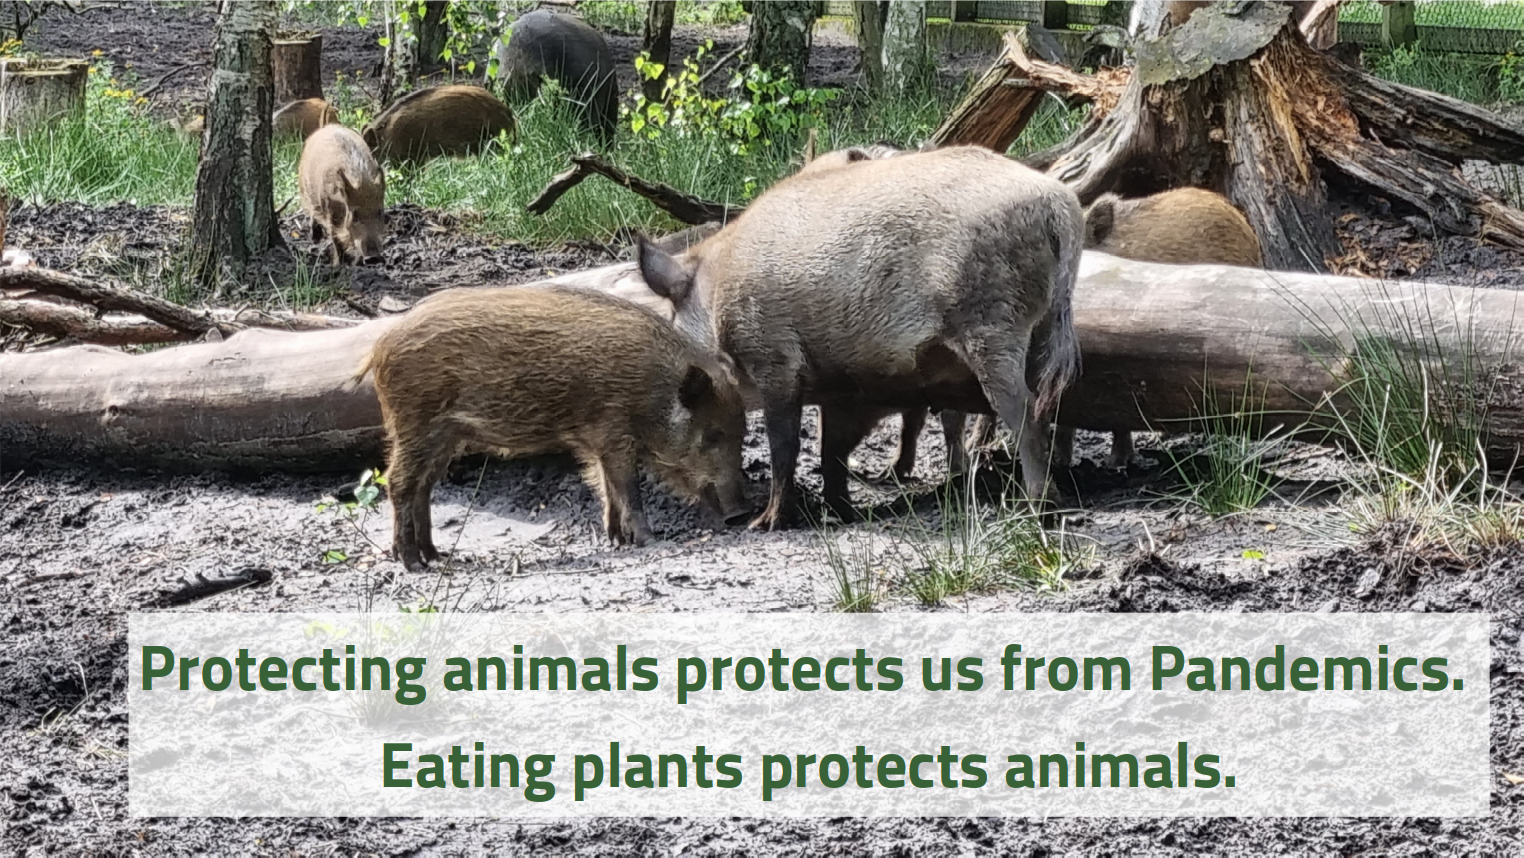 Image of wild boars. Text: Protecting animals protects us from Pandemics. Eating plants protects animals.